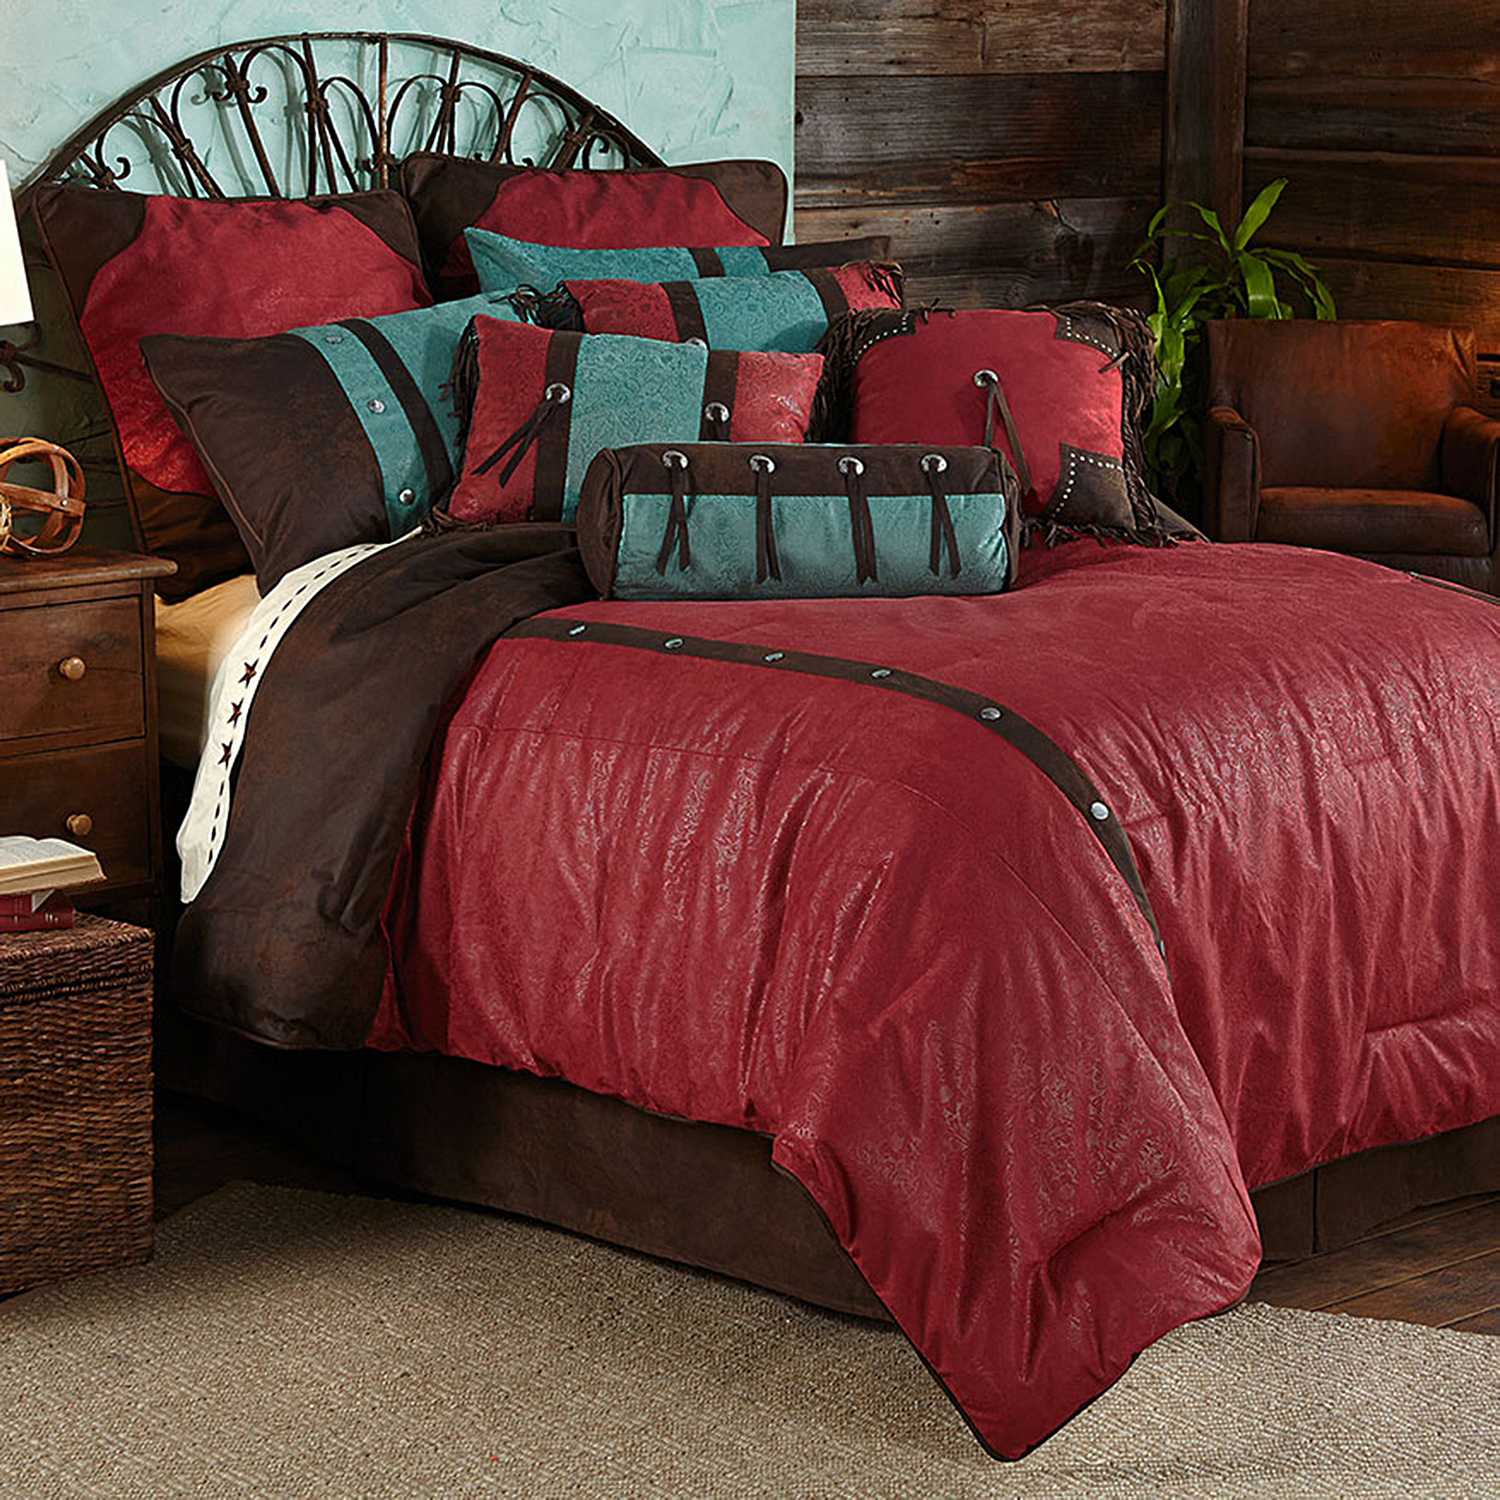 Cheyenne Red By Hiend Accents Homemax By Hiend Accents Beddingsuperstore Com